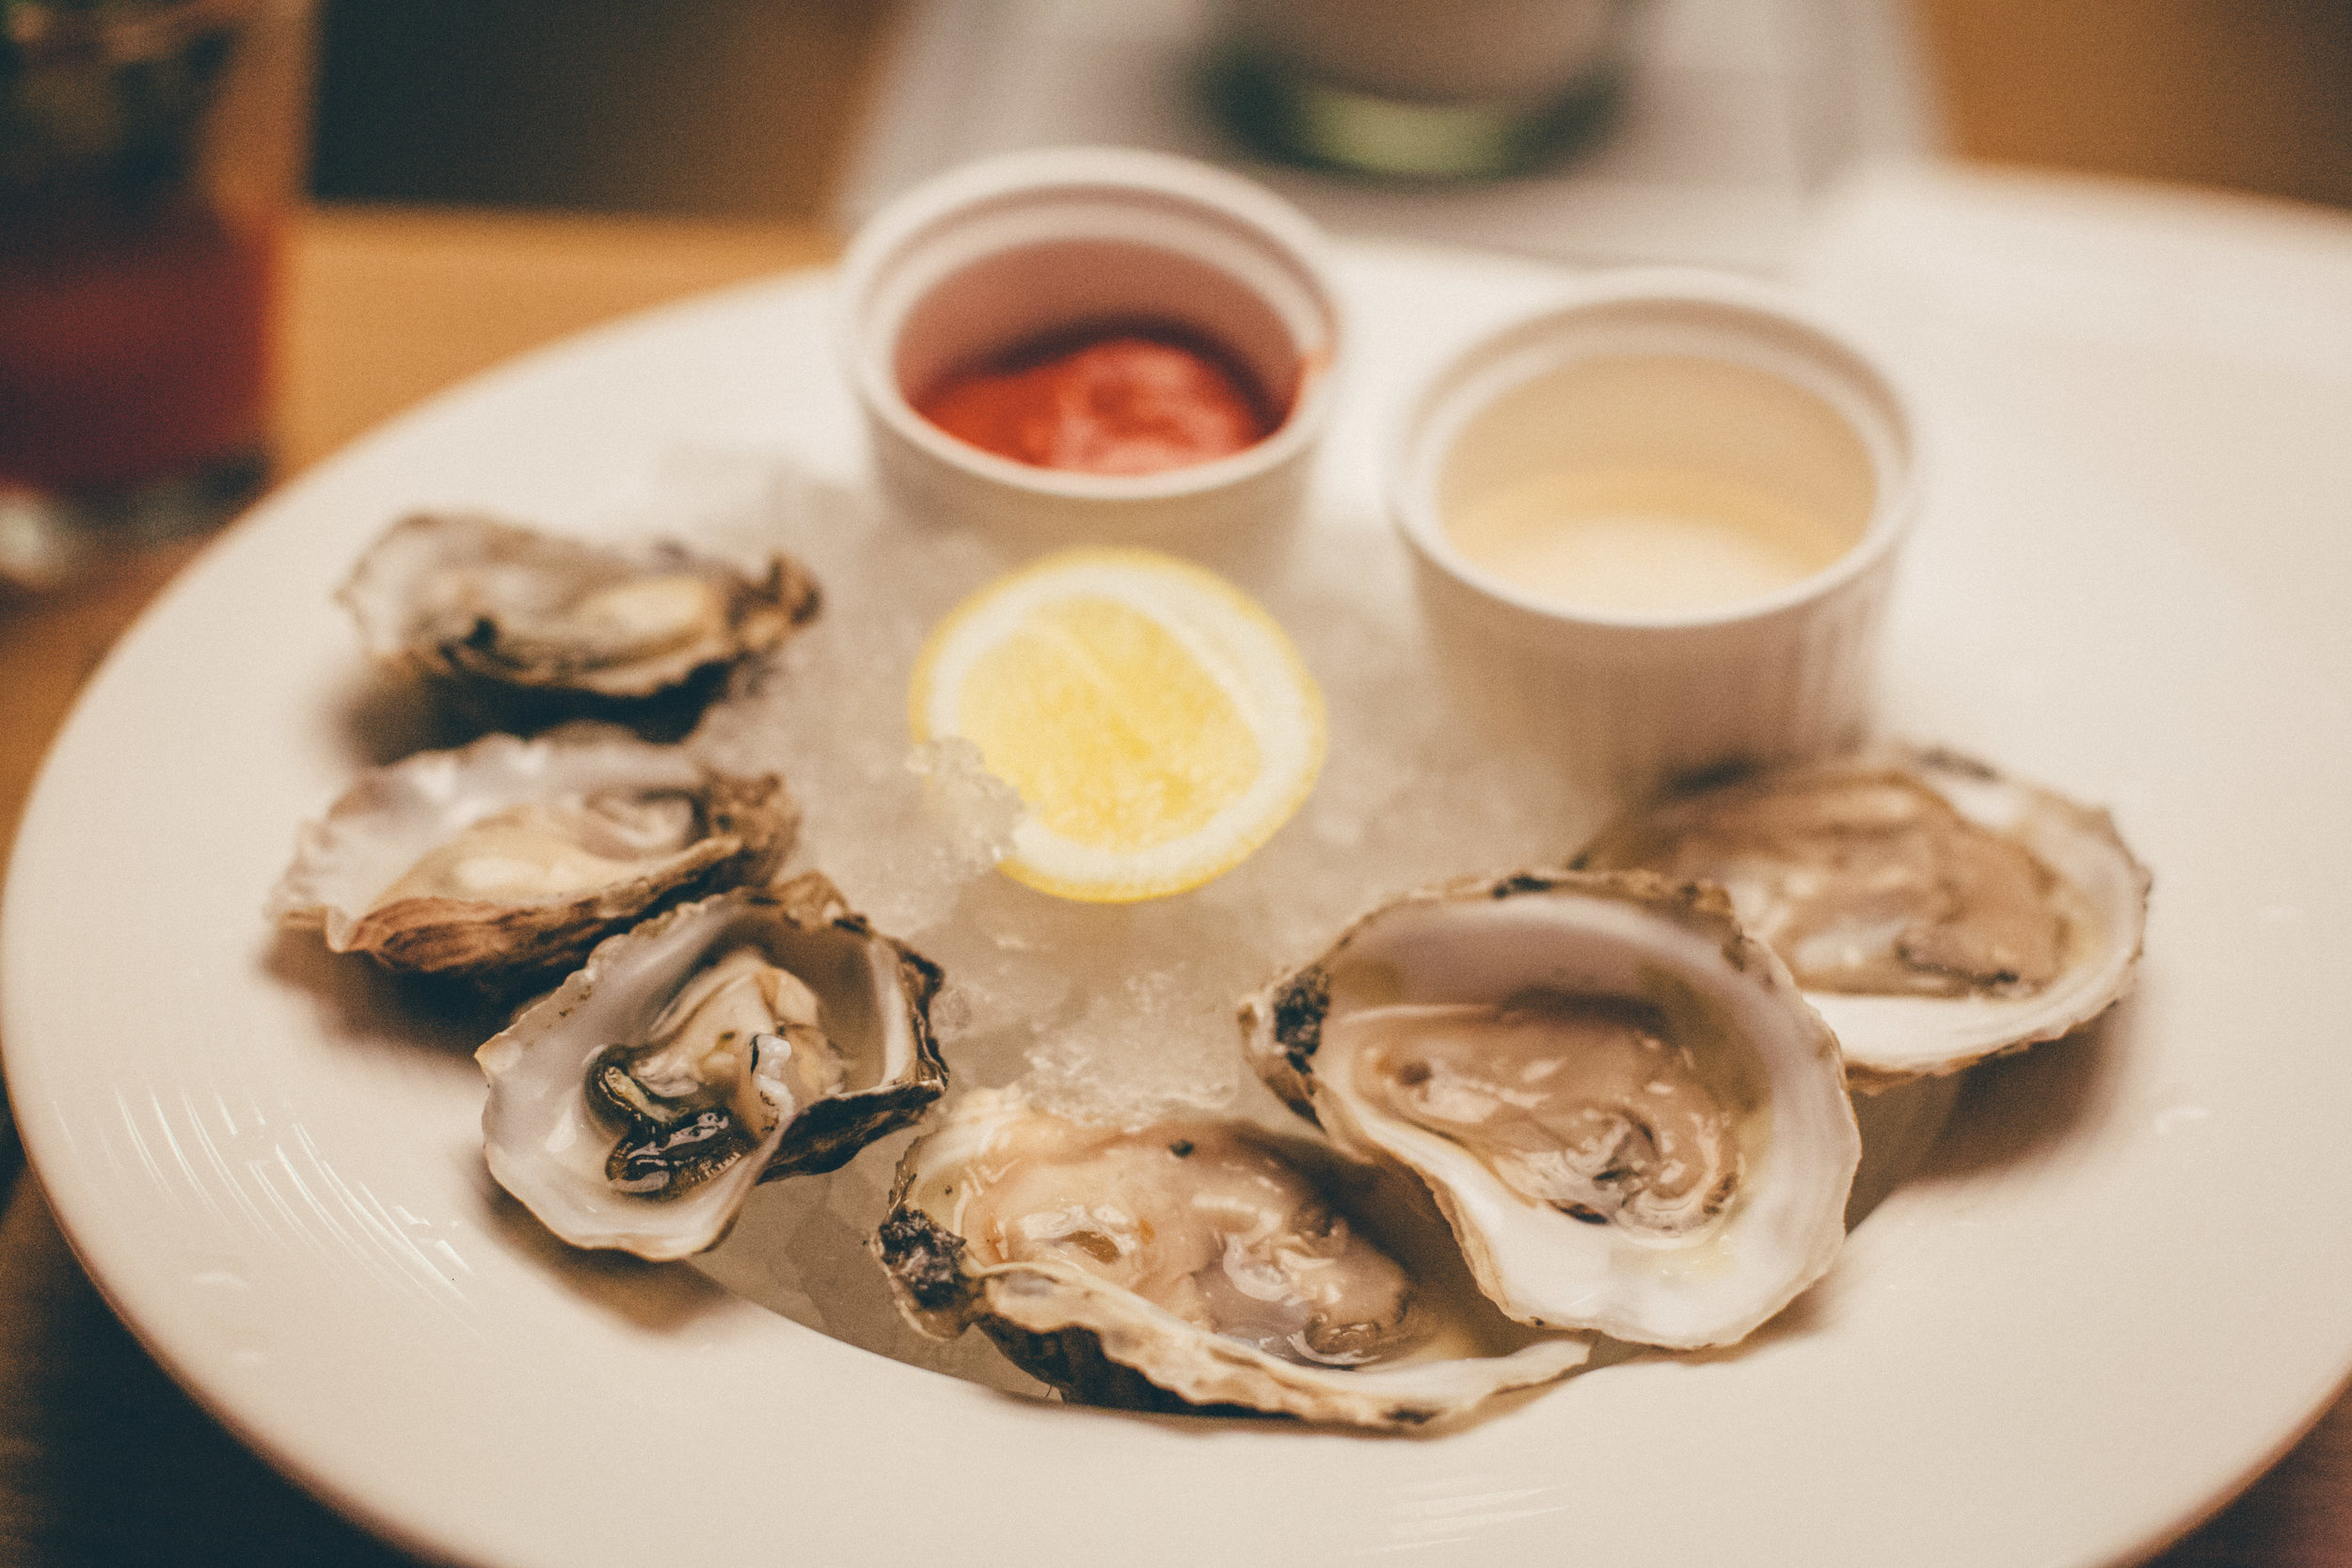 Moondancers Oysters from Cape Cod | Compass Point Oysters from Washington